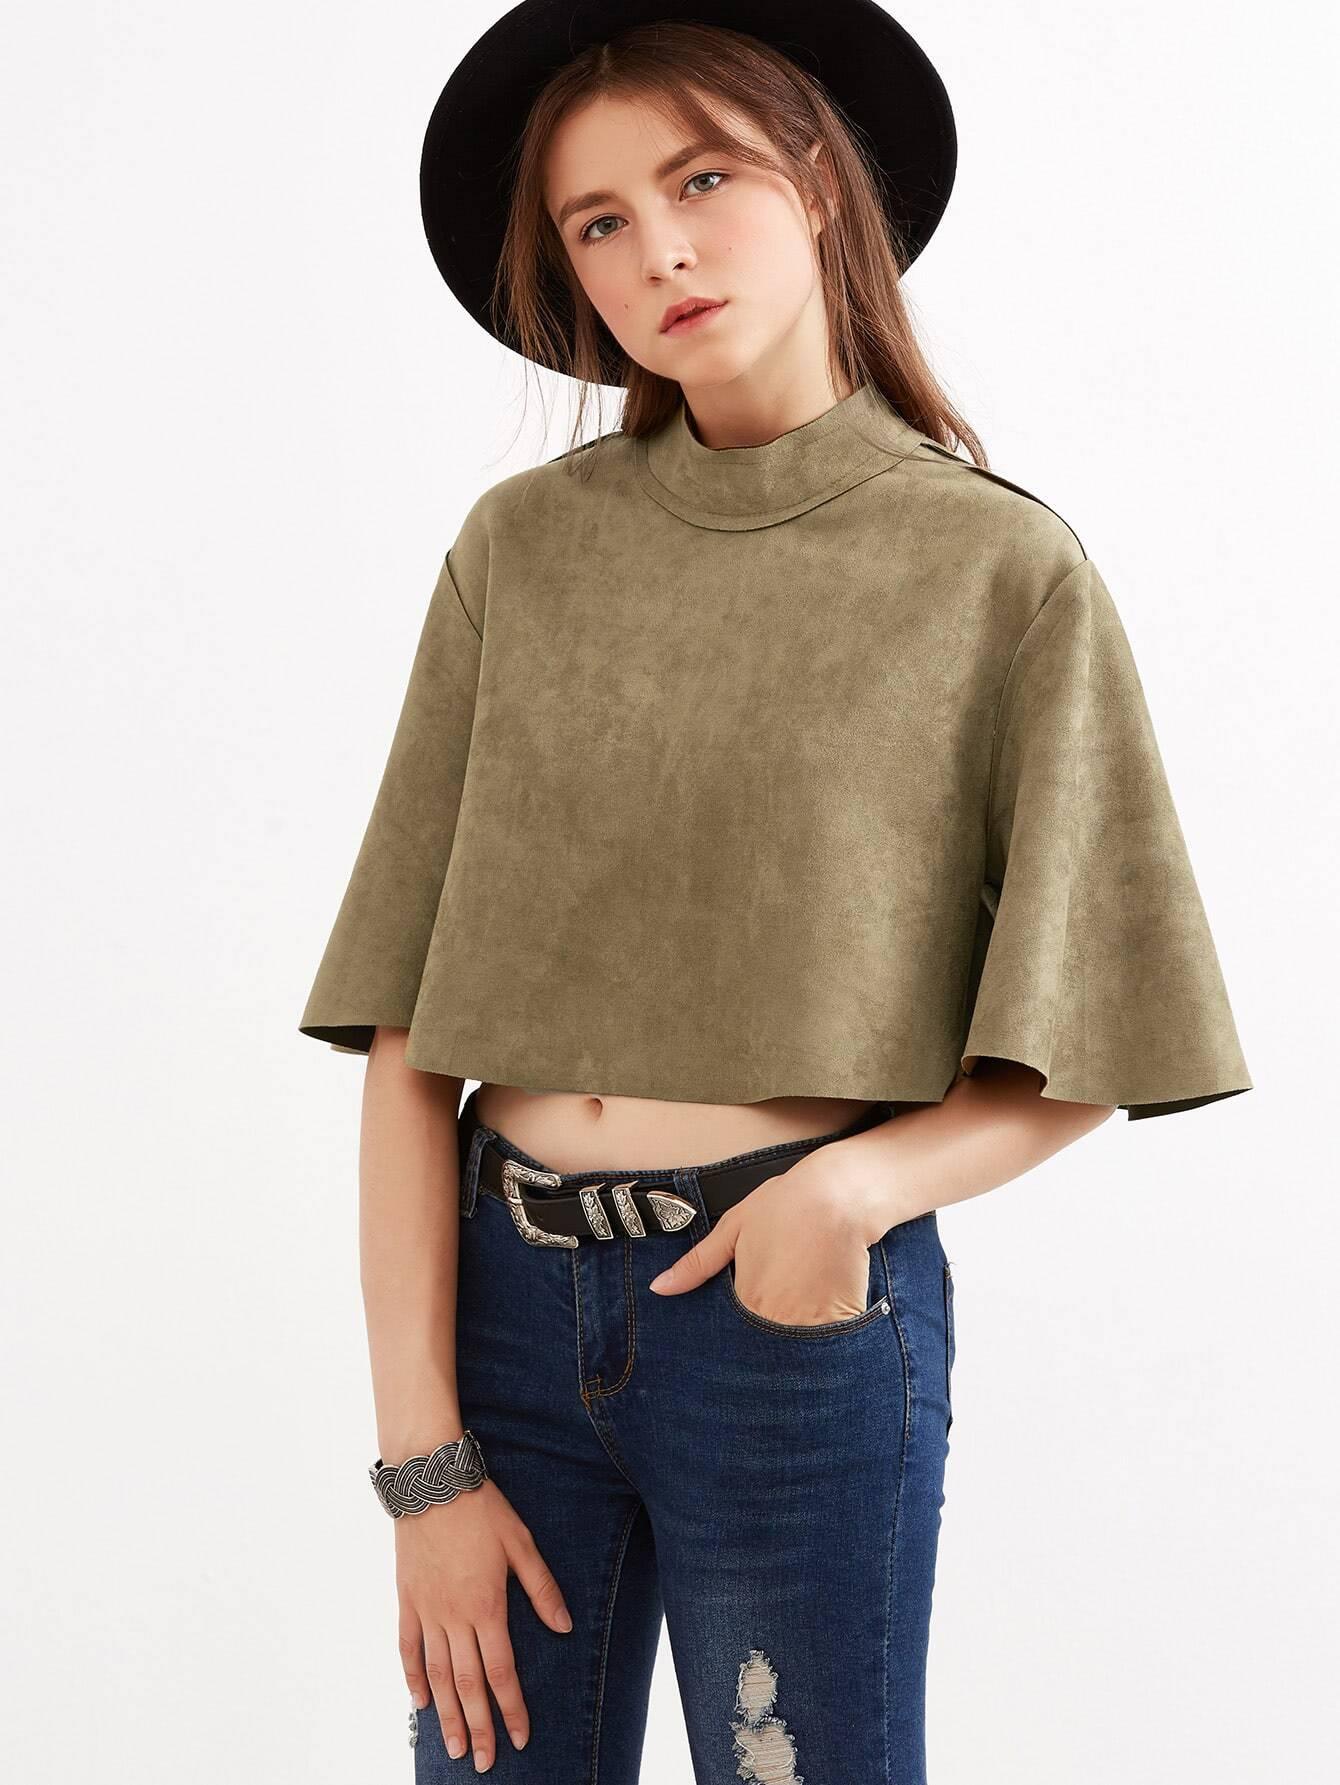 Army Green Mock Neck Zipper Back Crop Cape TopArmy Green Mock Neck Zipper Back Crop Cape Top<br><br>color: Army Green<br>size: one-size